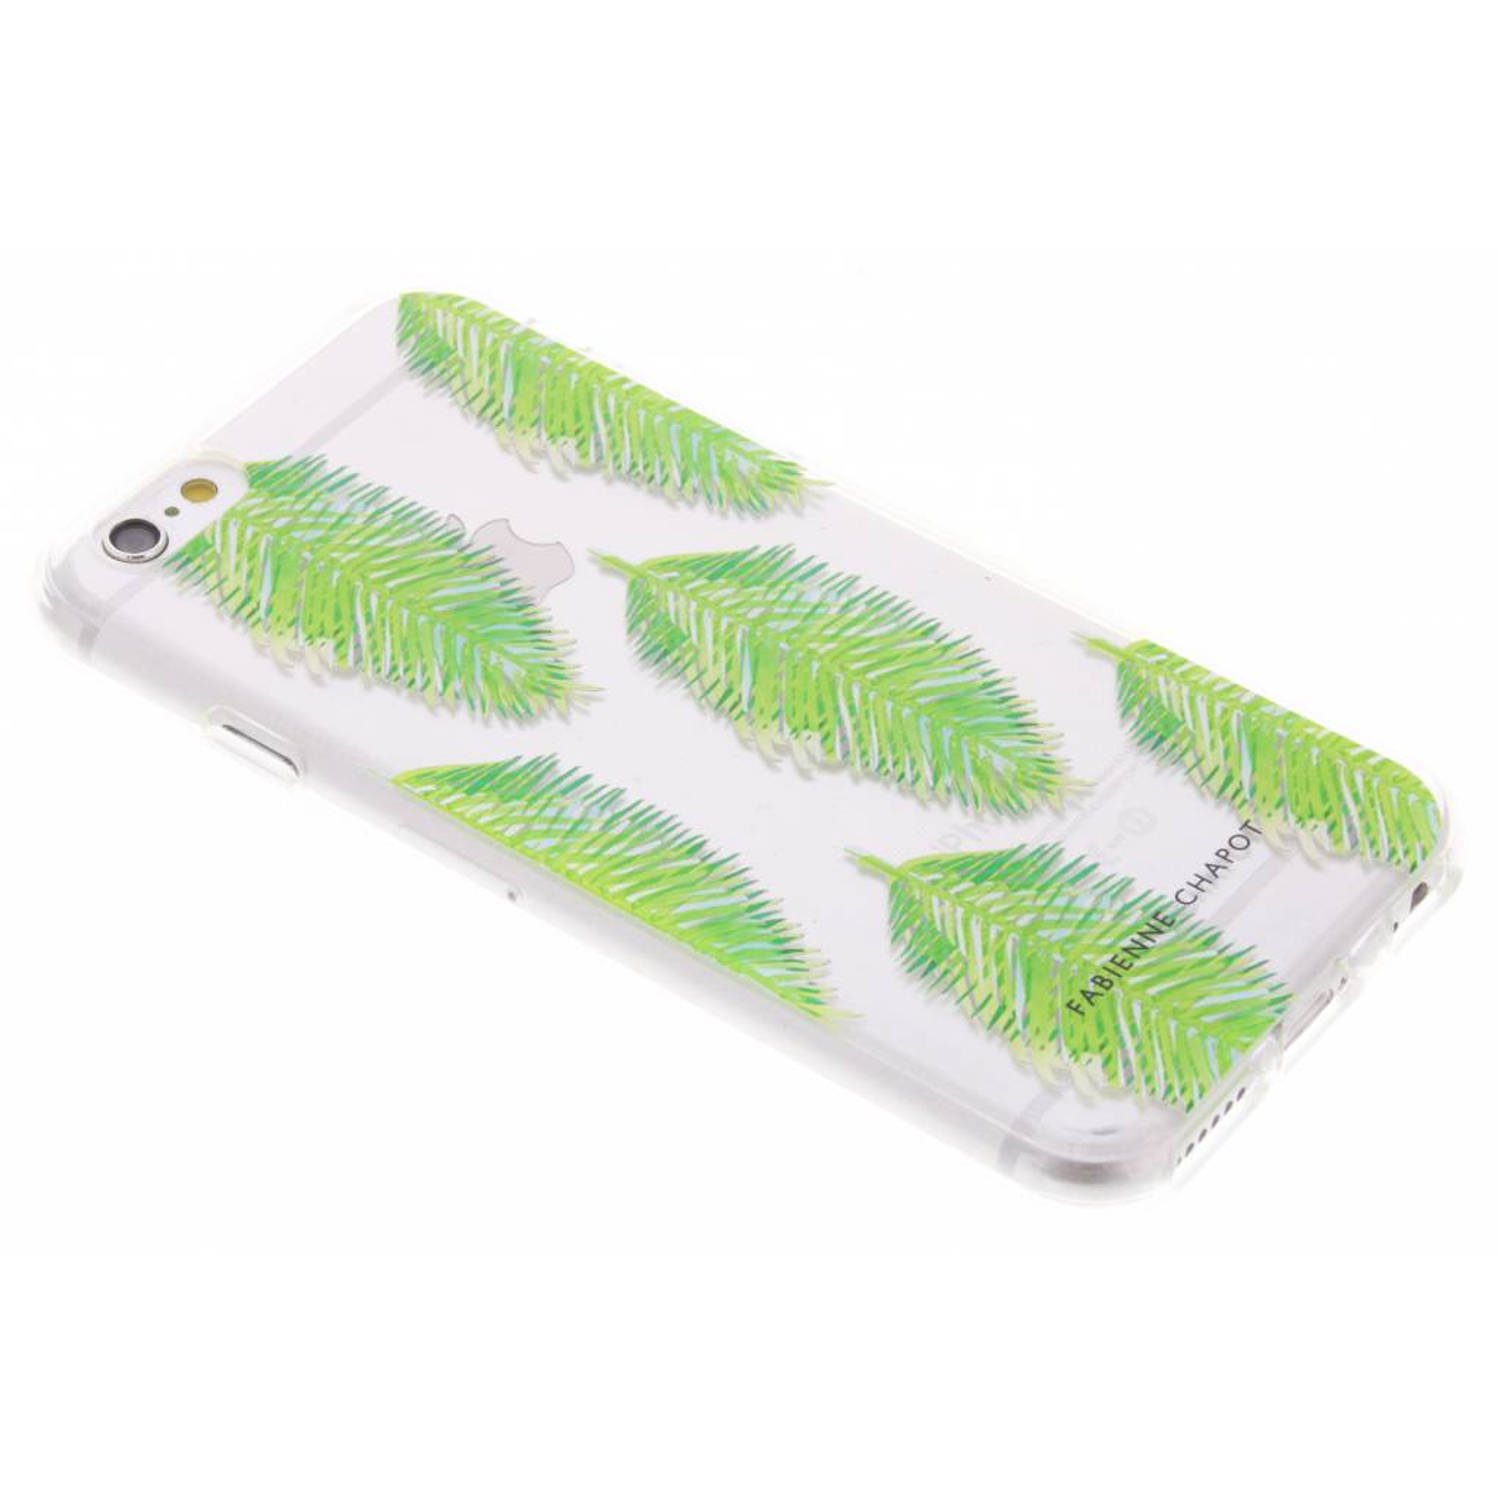 Blue Lagoon Softcase voor de iPhone 6(s) Plus